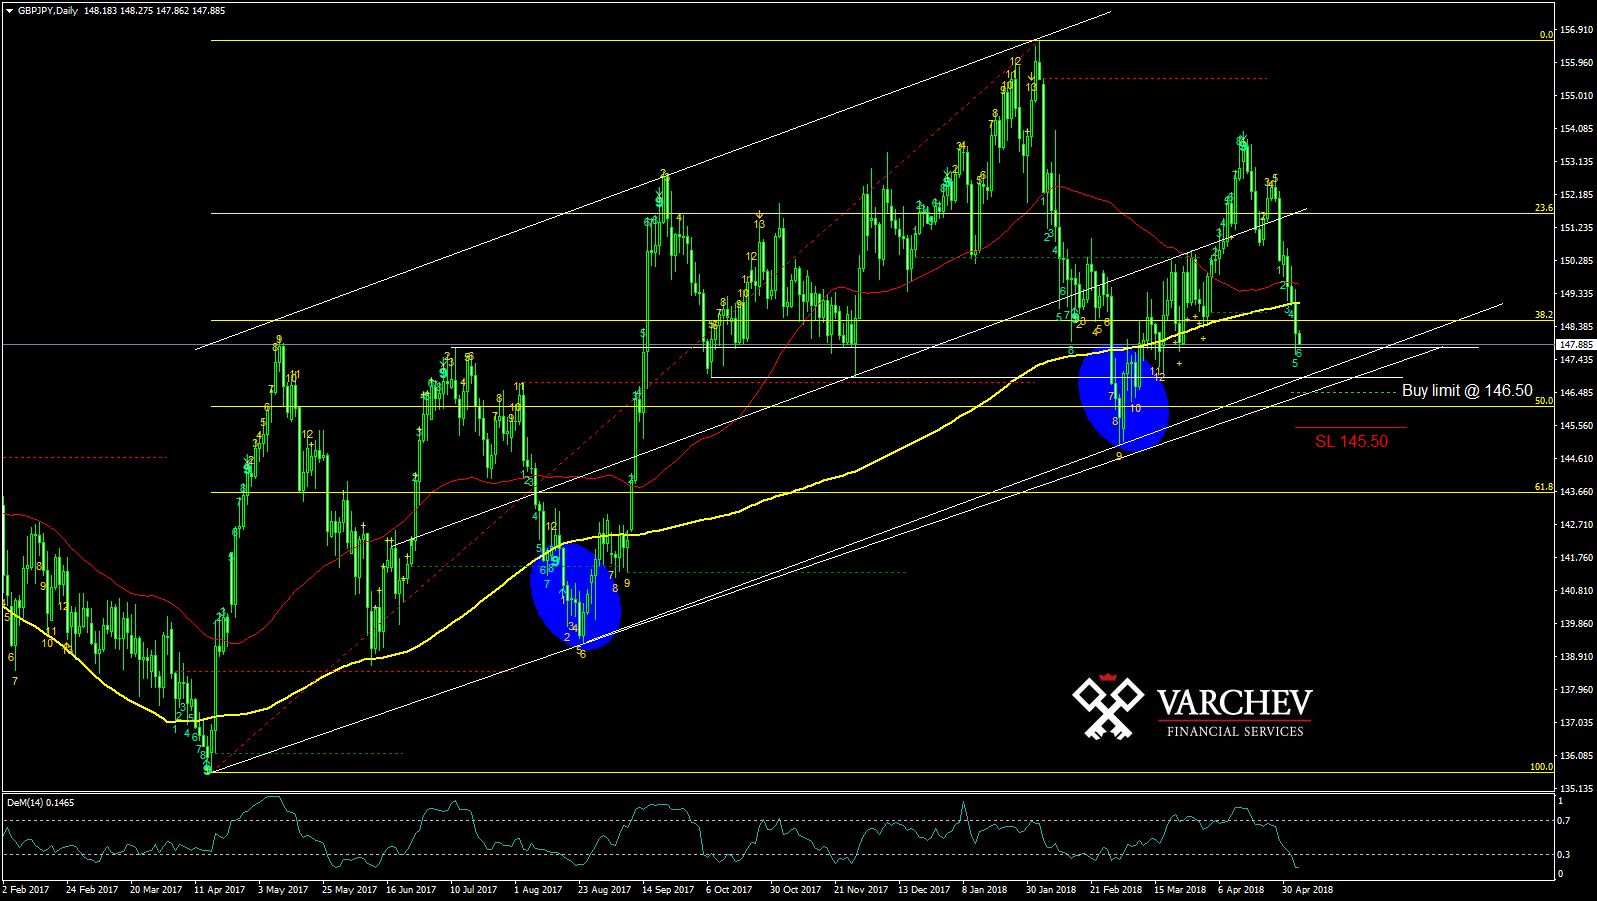 GBP/JPY technical levels